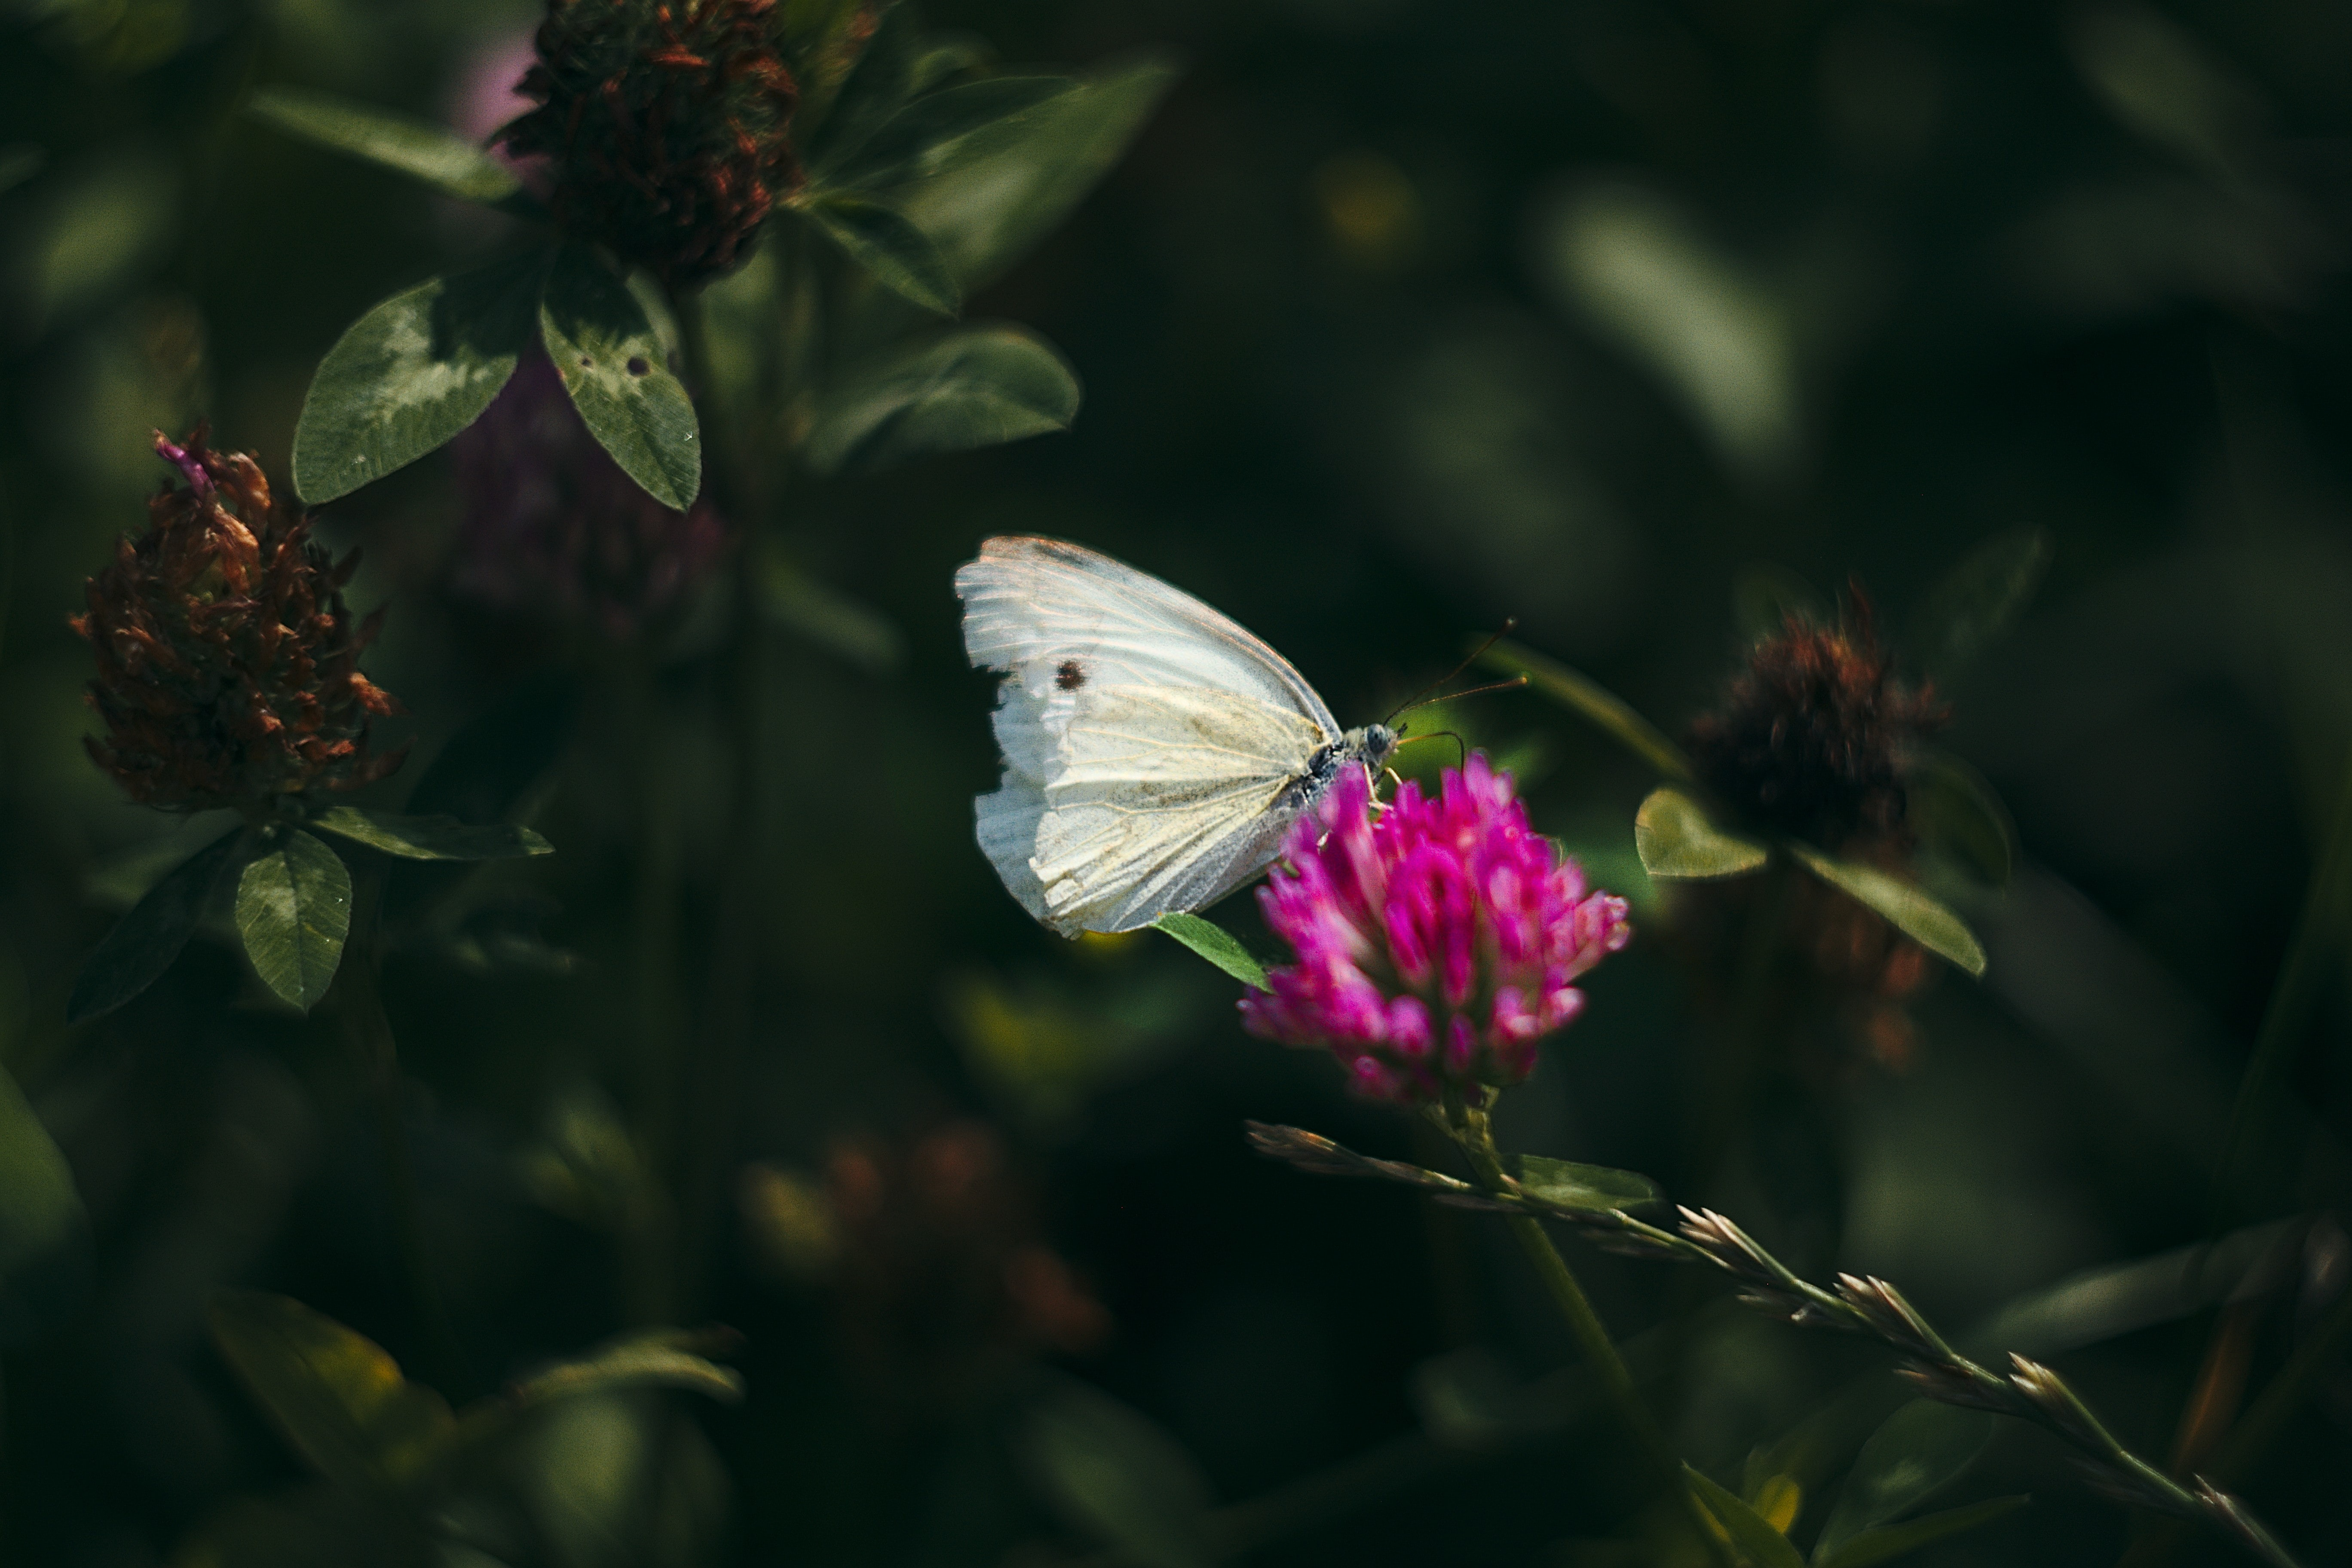 white moth perched on pink flower